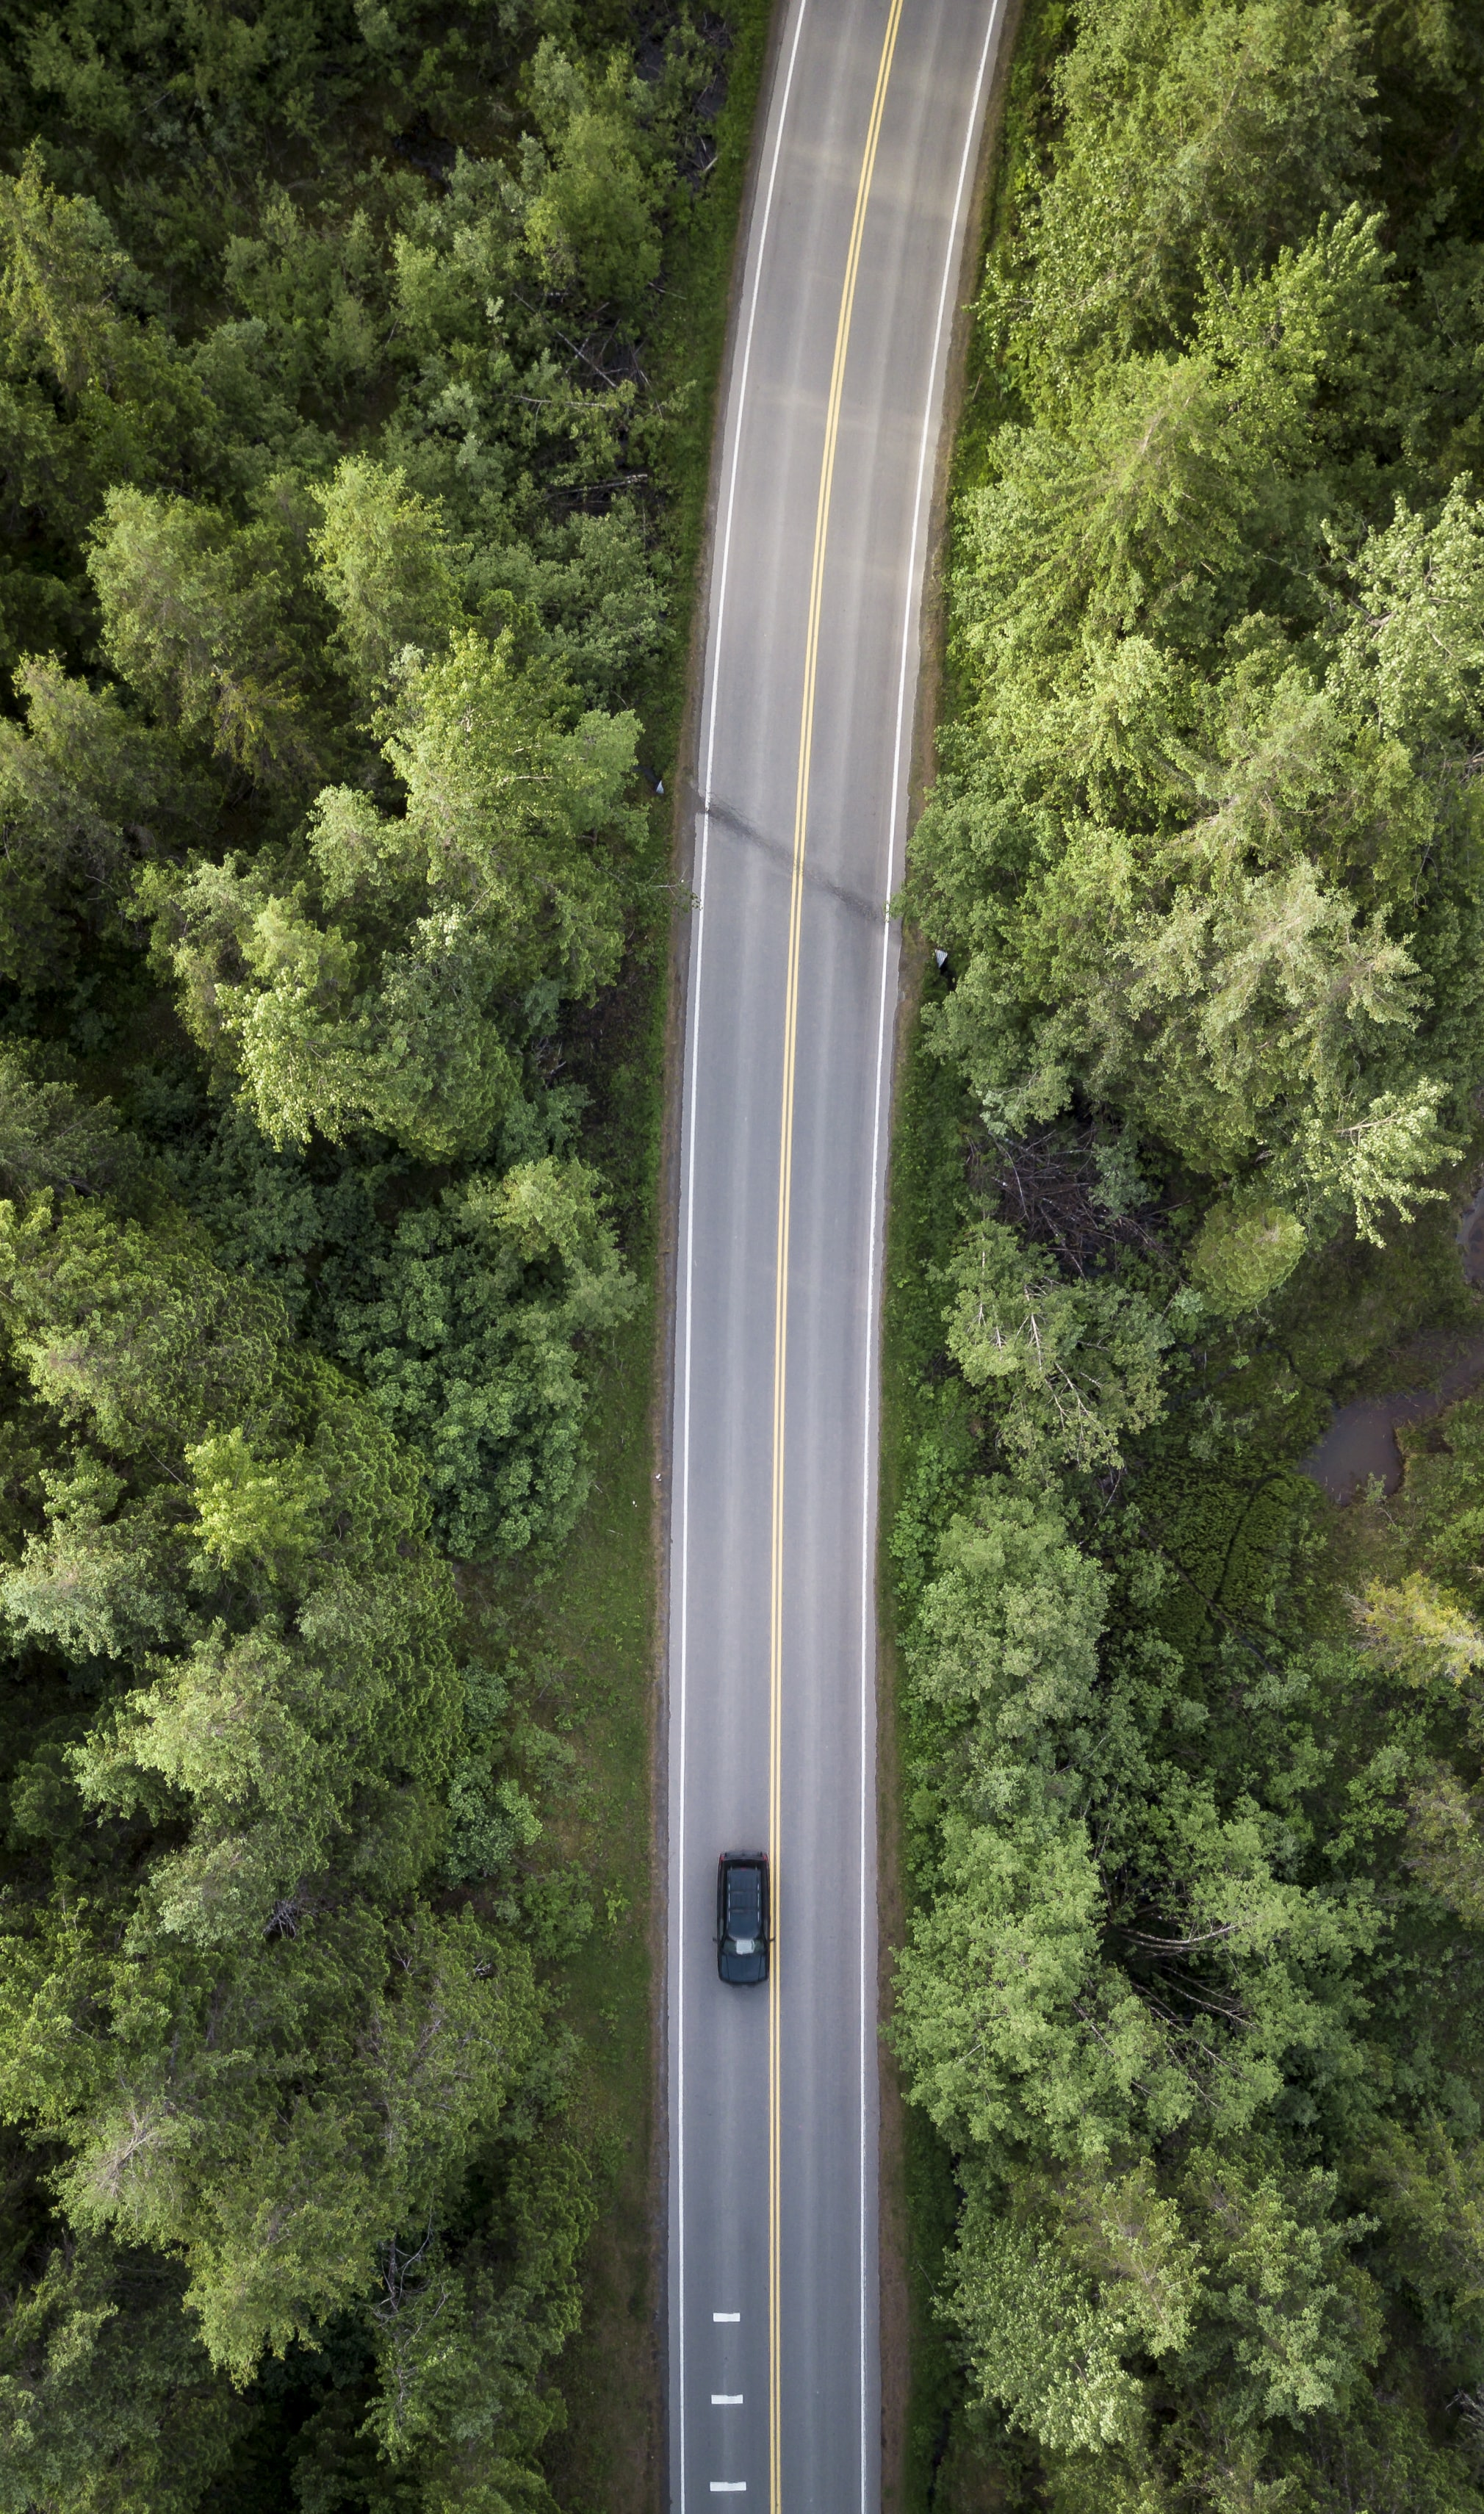 A drone shot of a black car on a tree-lined road near Juneau